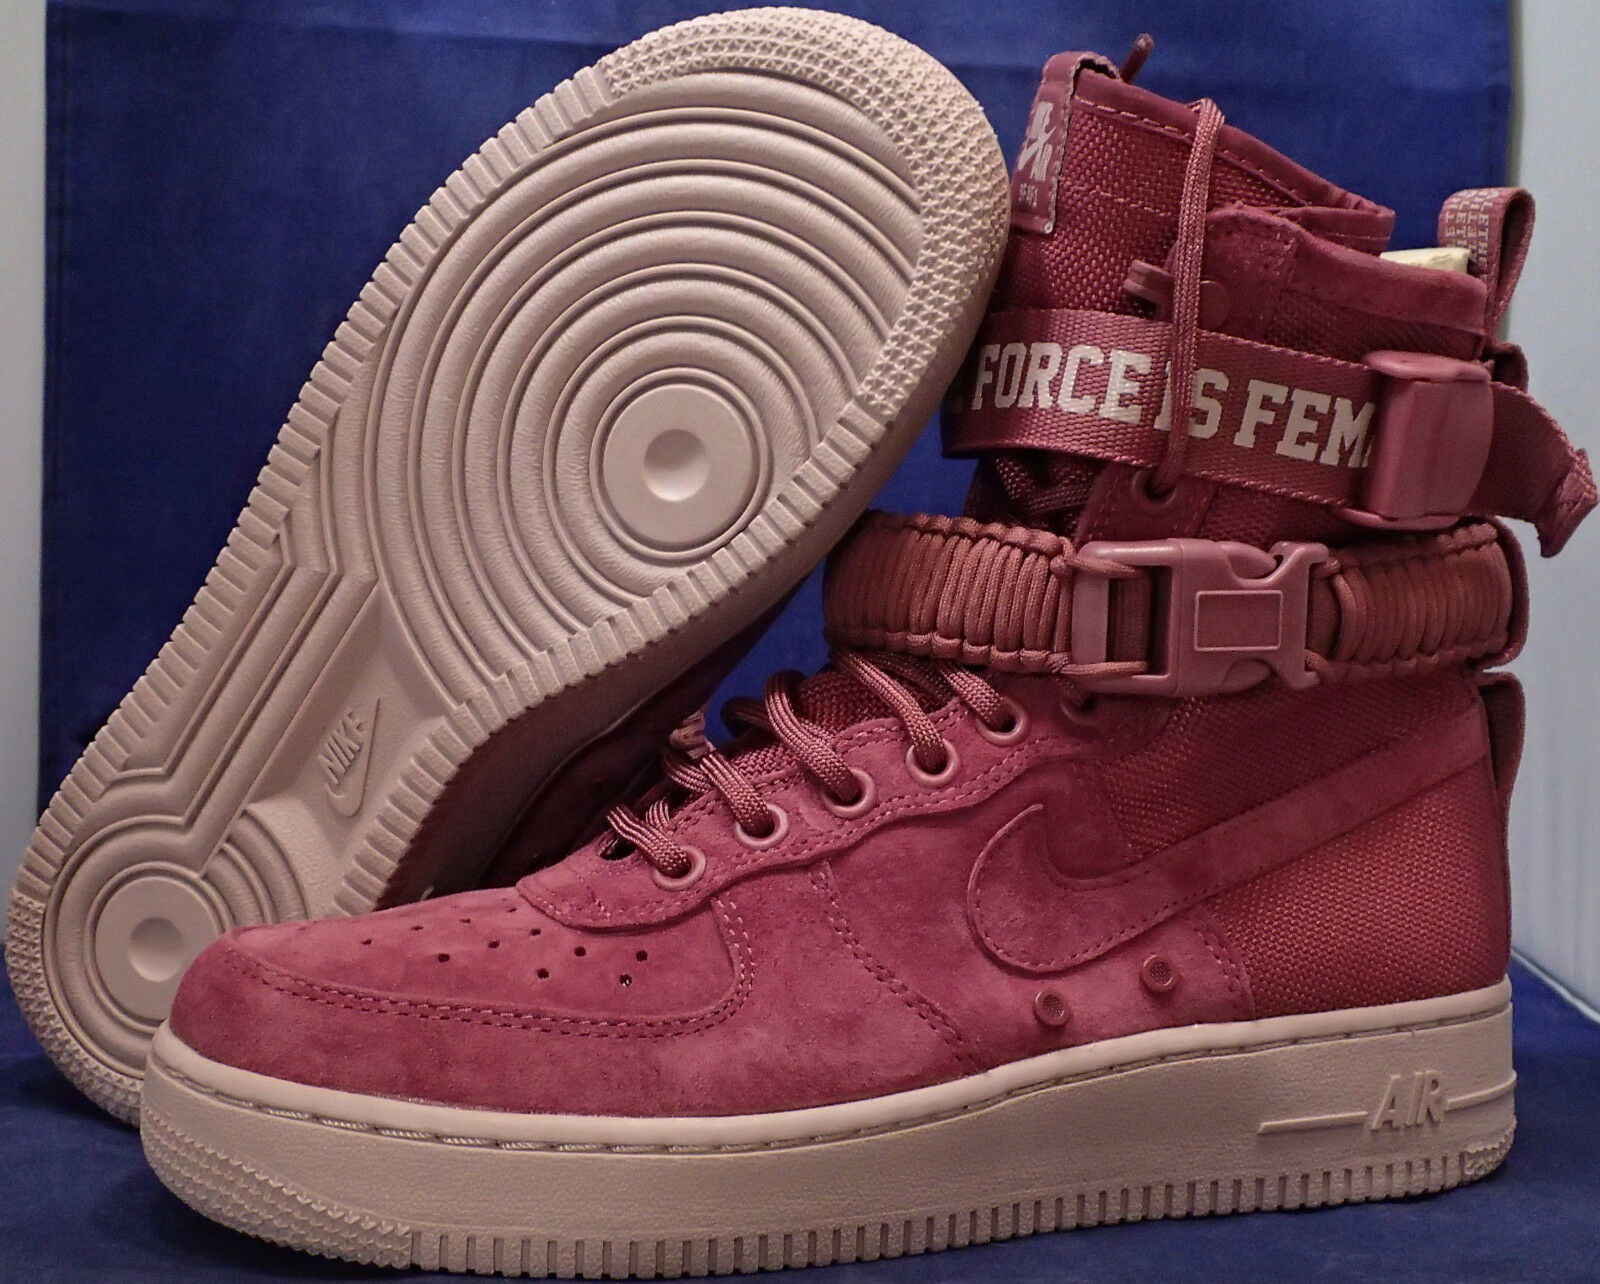 donna Nike SF Air Force 1 The Force is Female Female Female Vintage Wine SZ 7.5 (AJ1700-600) 8346bf